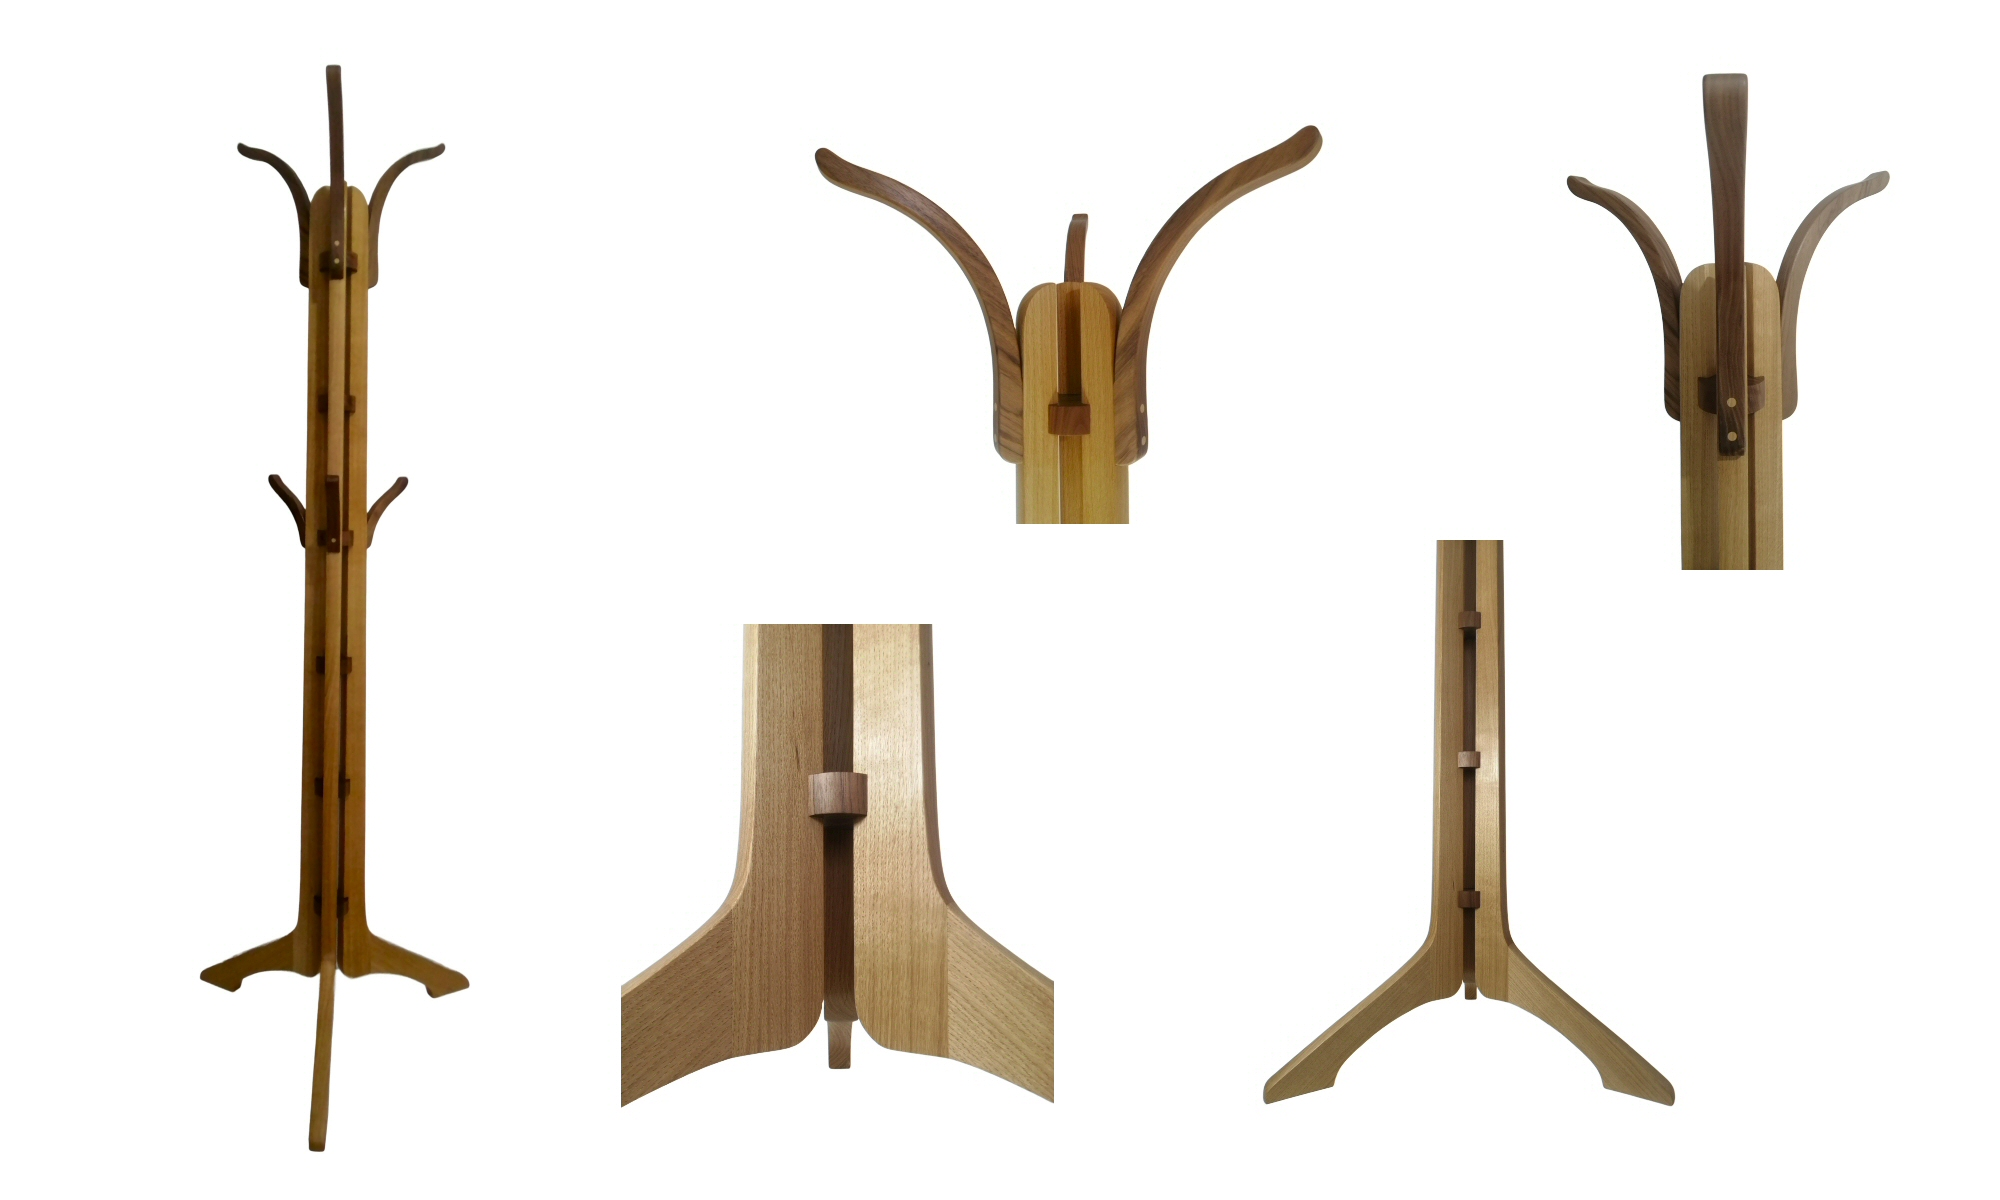 walnut and oak coat stand image from gallery - bespoke furniture handcrafted by Richard Frost Design